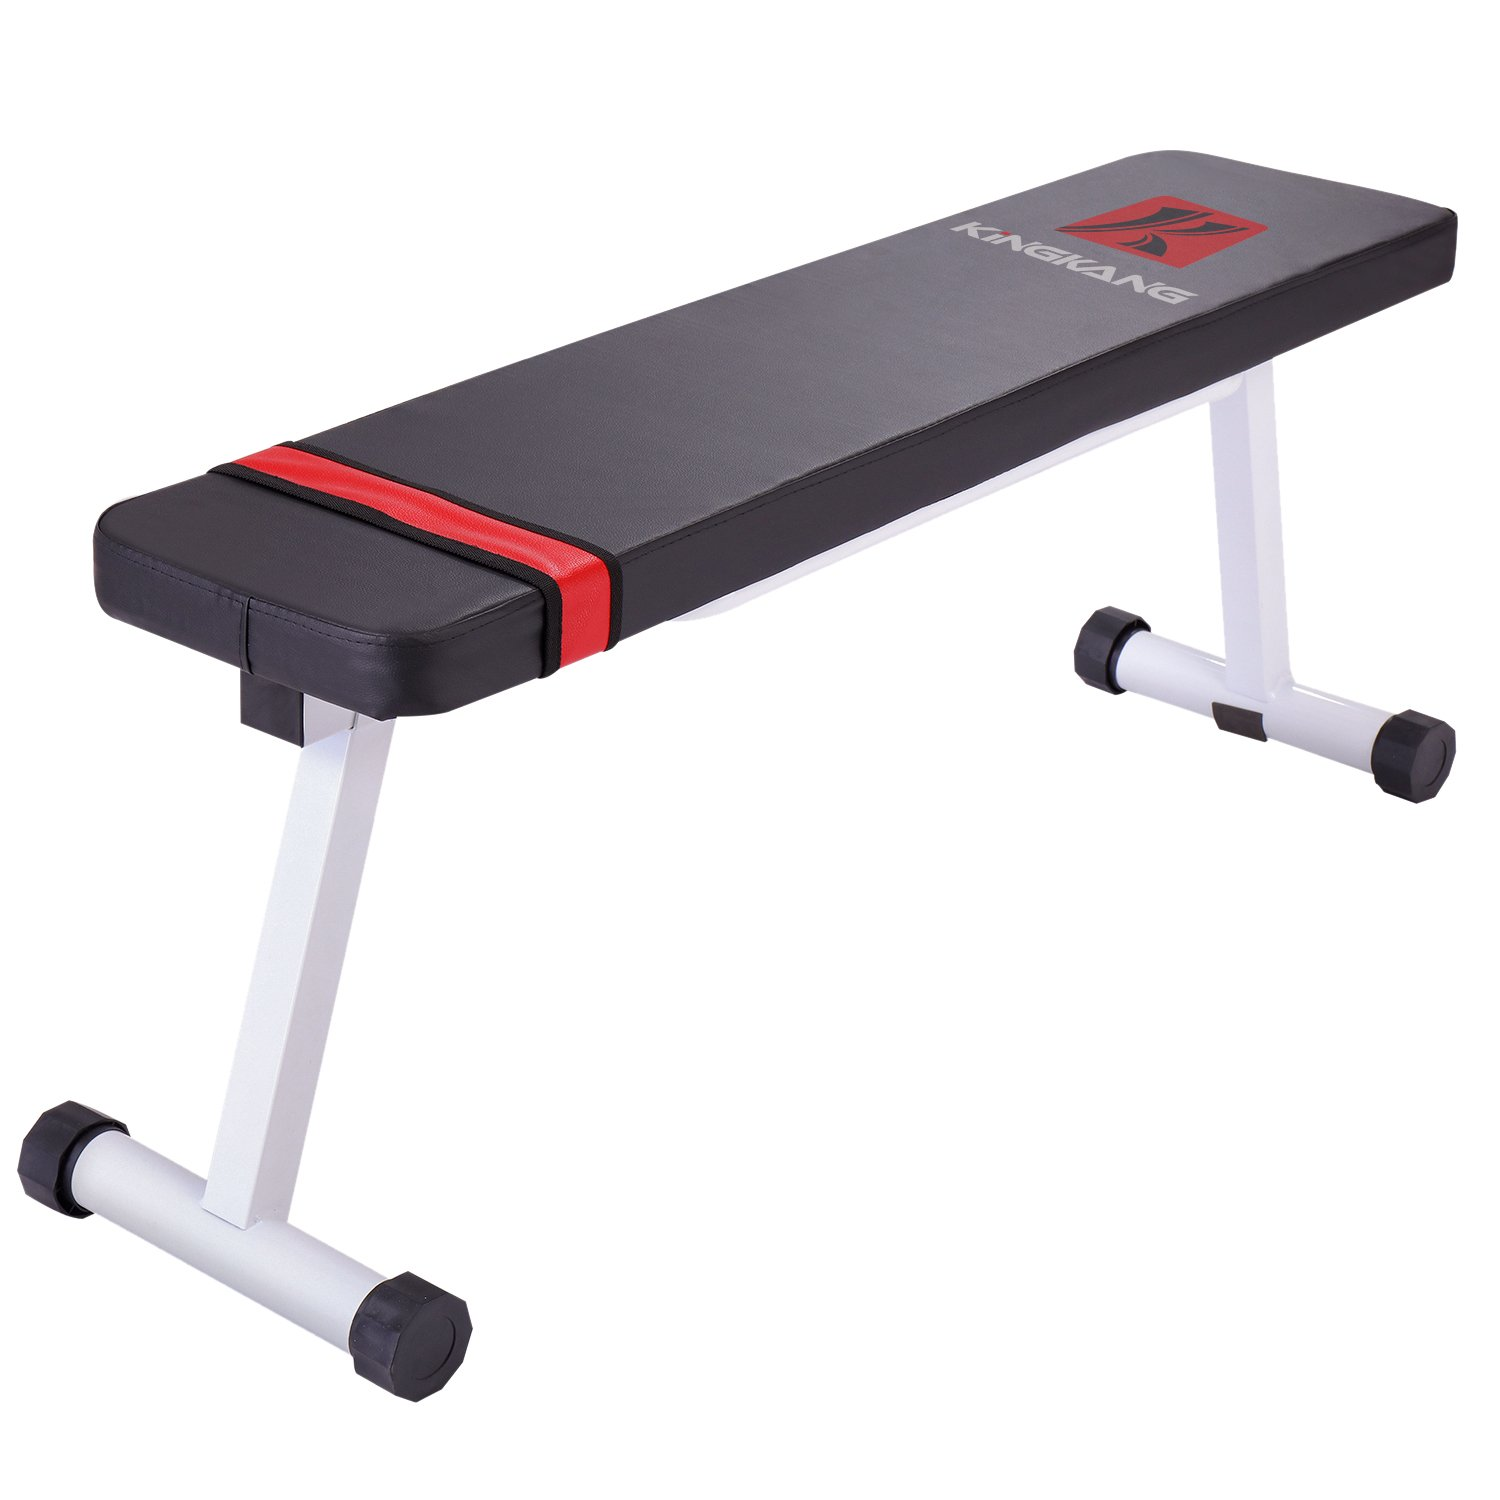 2. K KiNGKANG Flat Weight Bench